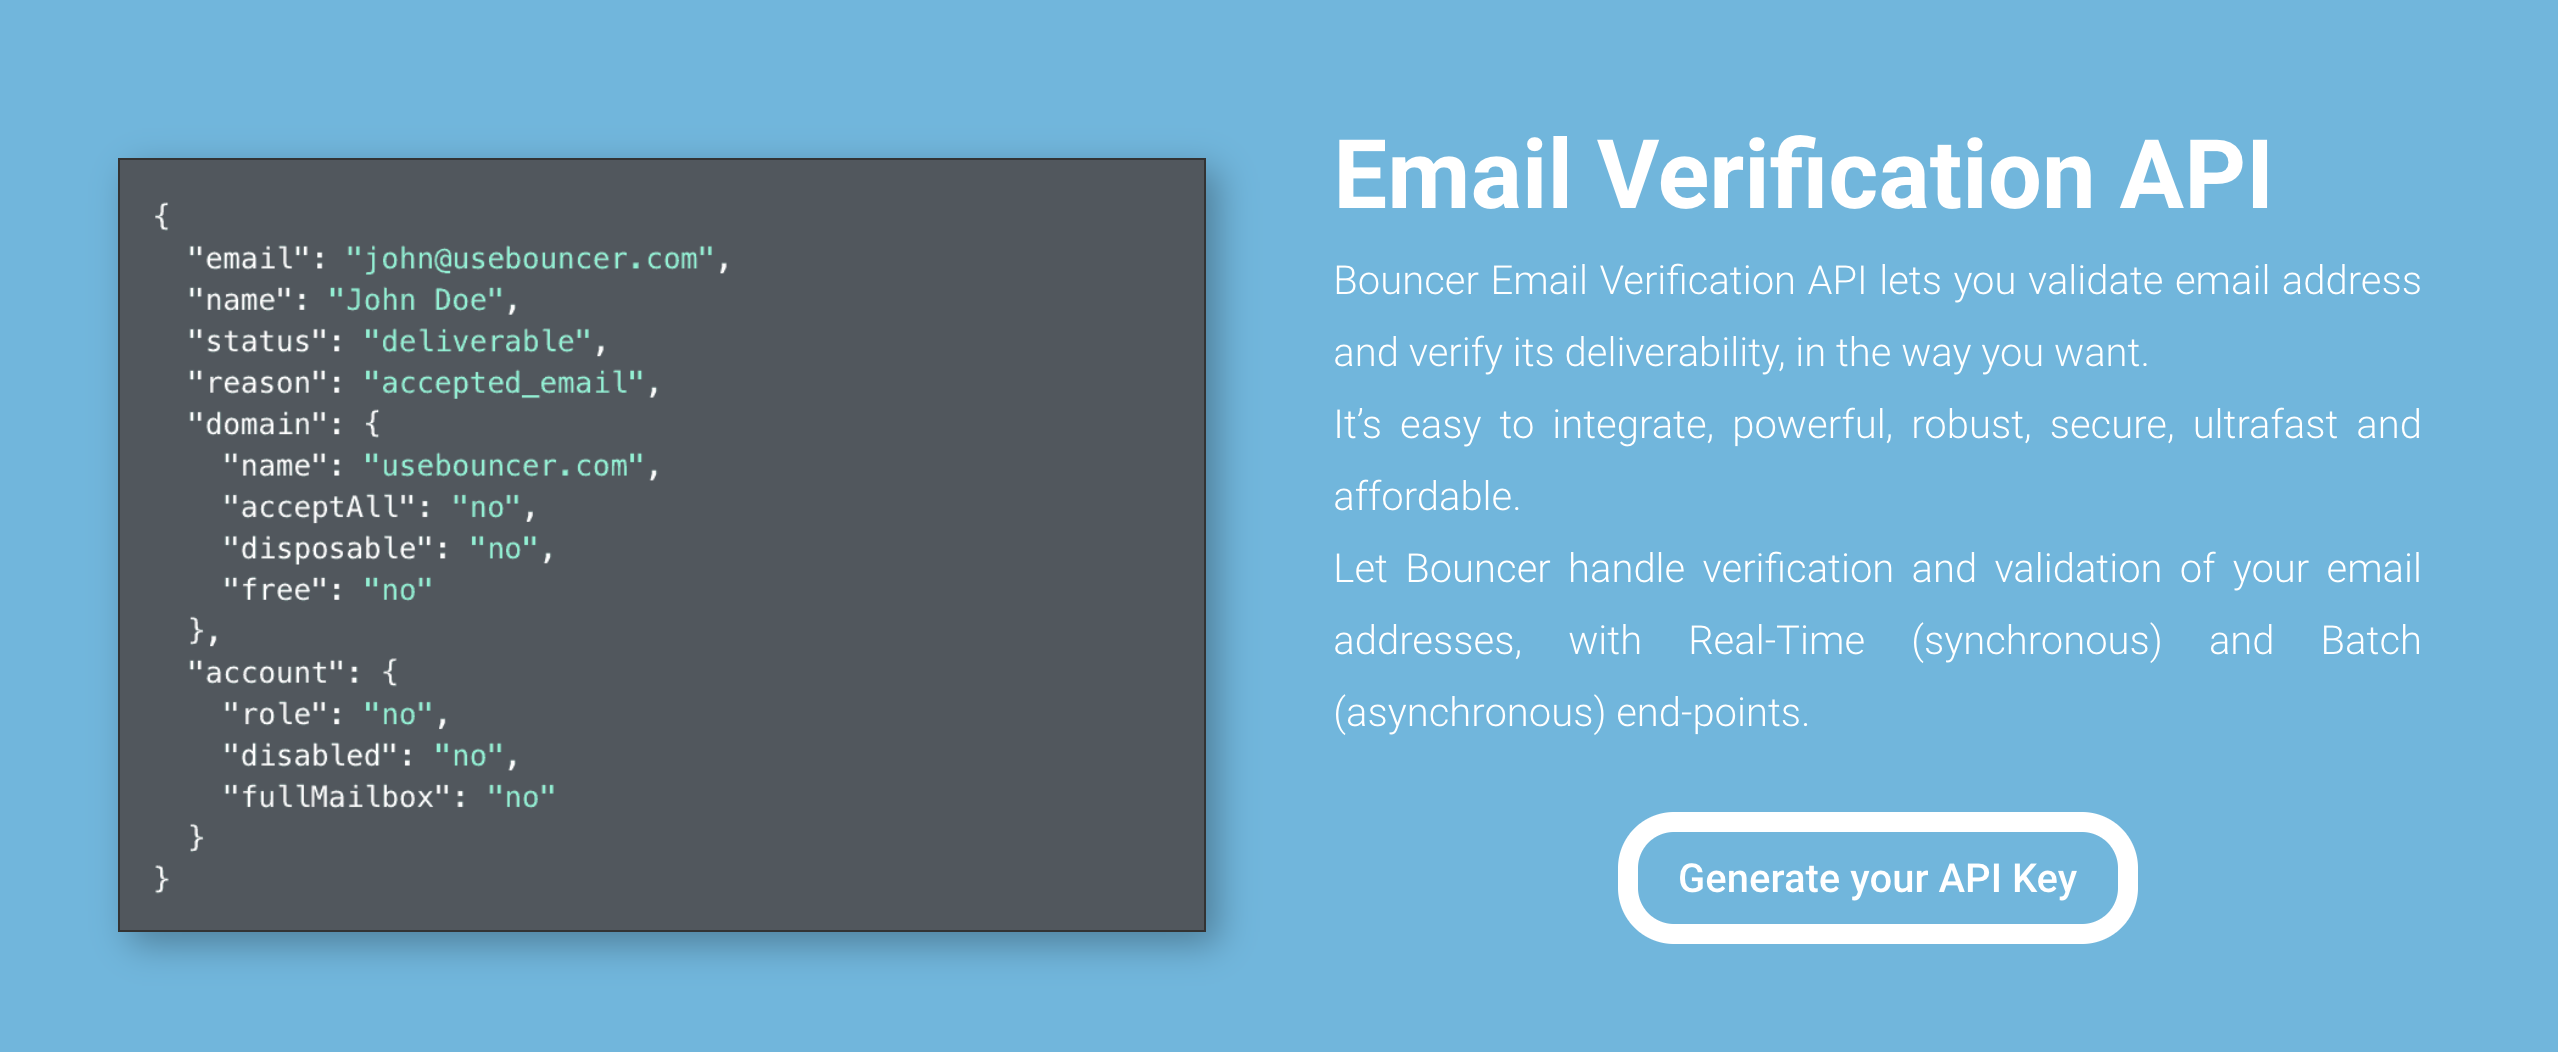 Bouncer - Email Verification API